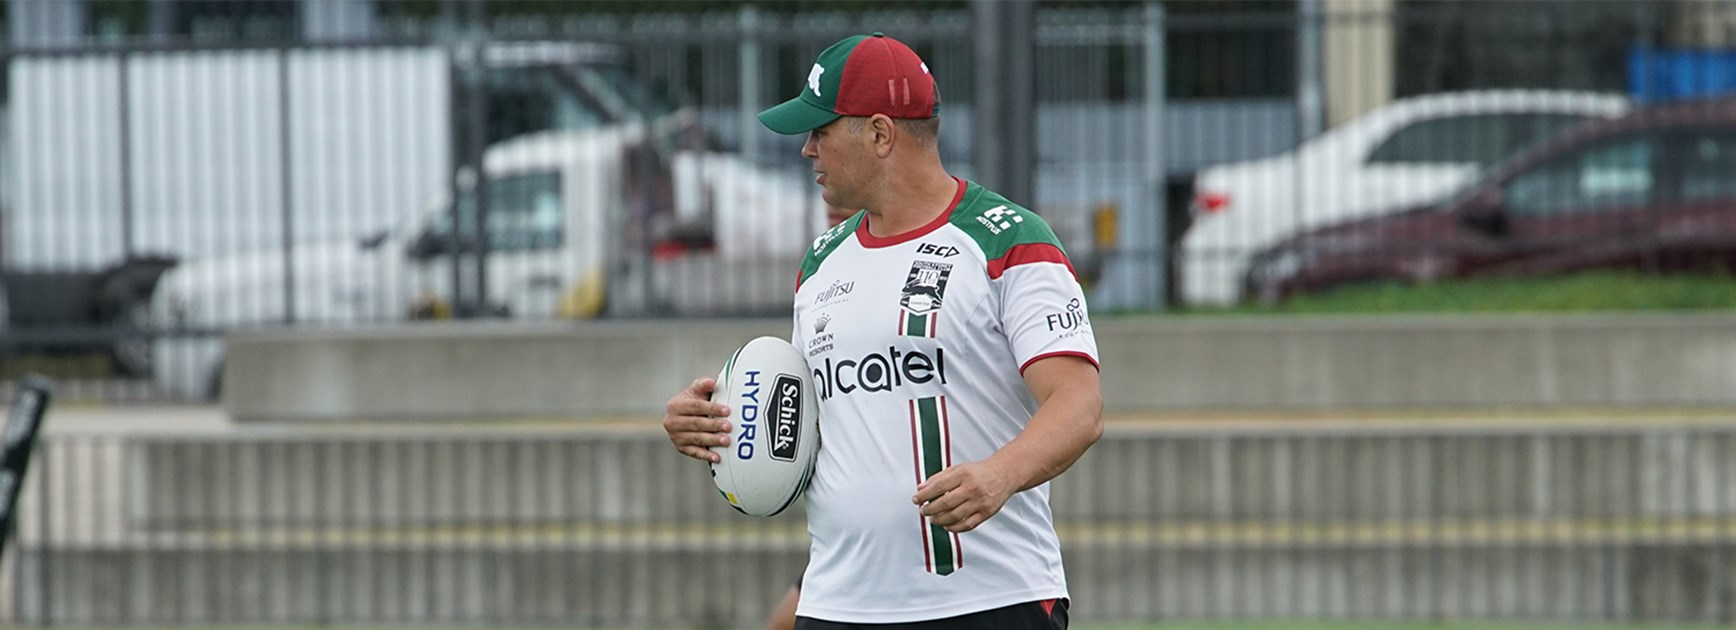 Players looking forward to big contest - Seibold